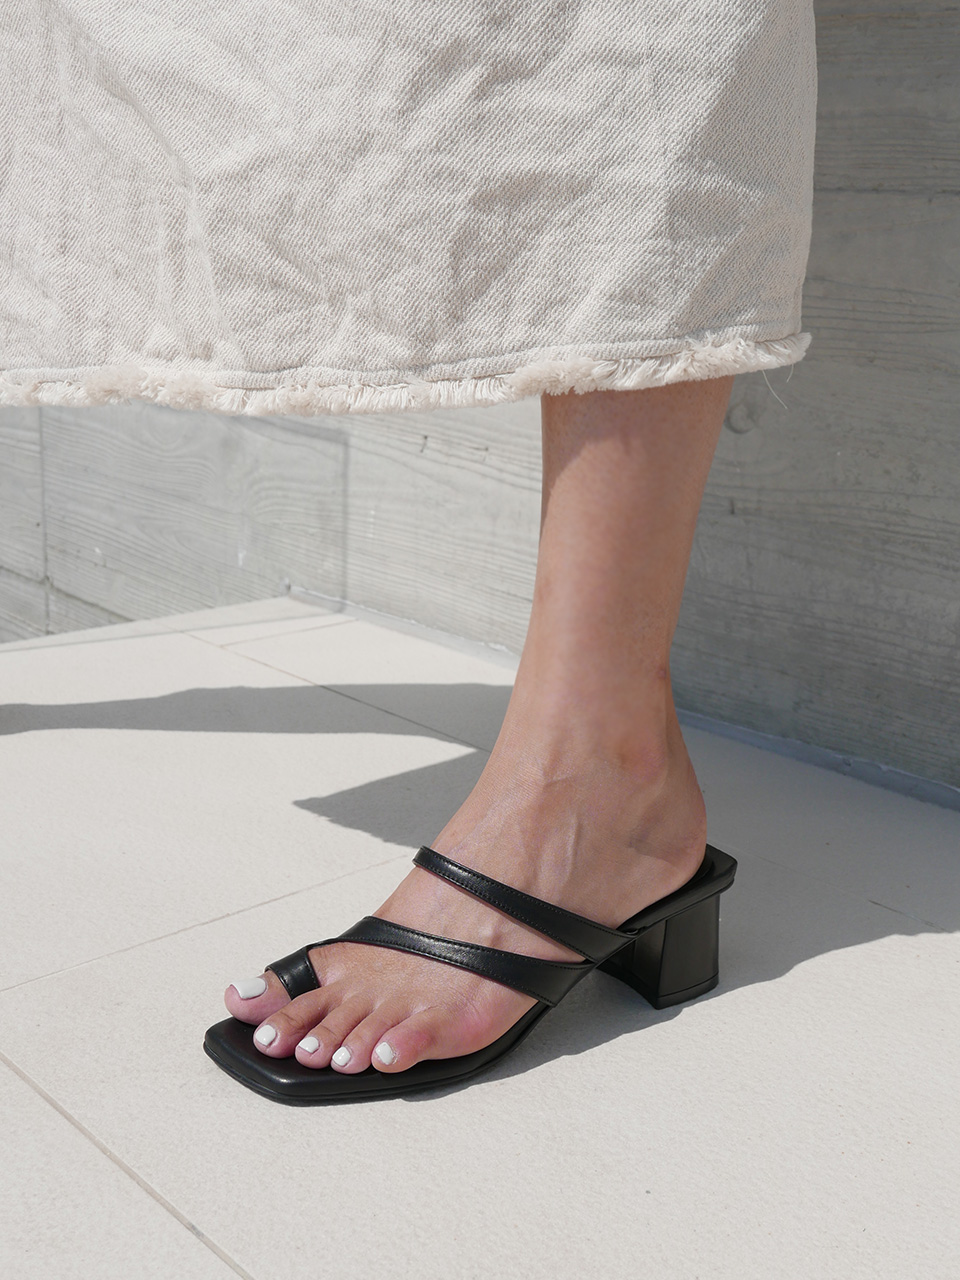 Mrc036 Resort Sandal (Black)